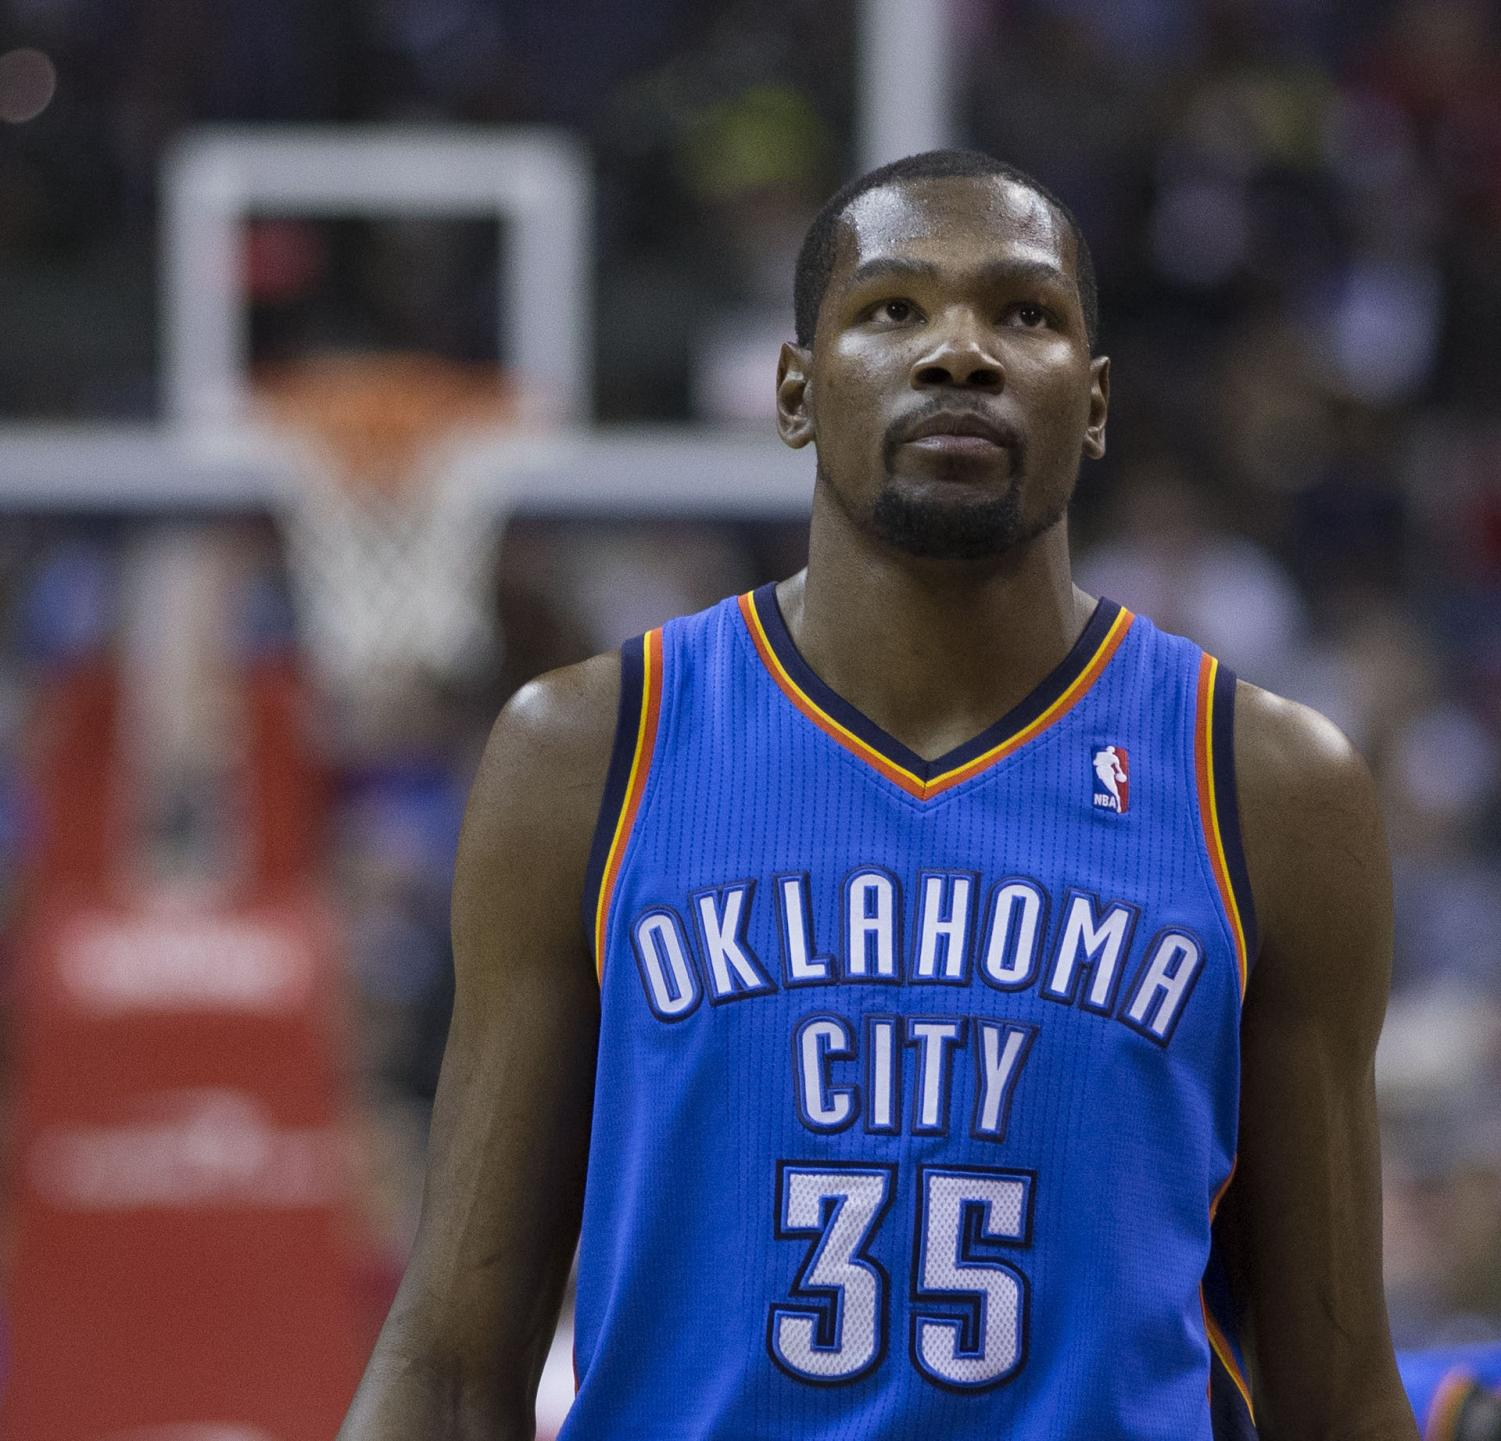 Kevin Durant looks on during the Oklahoma City Thunder's game at the Verizon Center against the Washington Wizards on February 1, 2014. Durant has now won back-to-back championships and Finals MVP with the Warriors, ruining the NBA in the process.